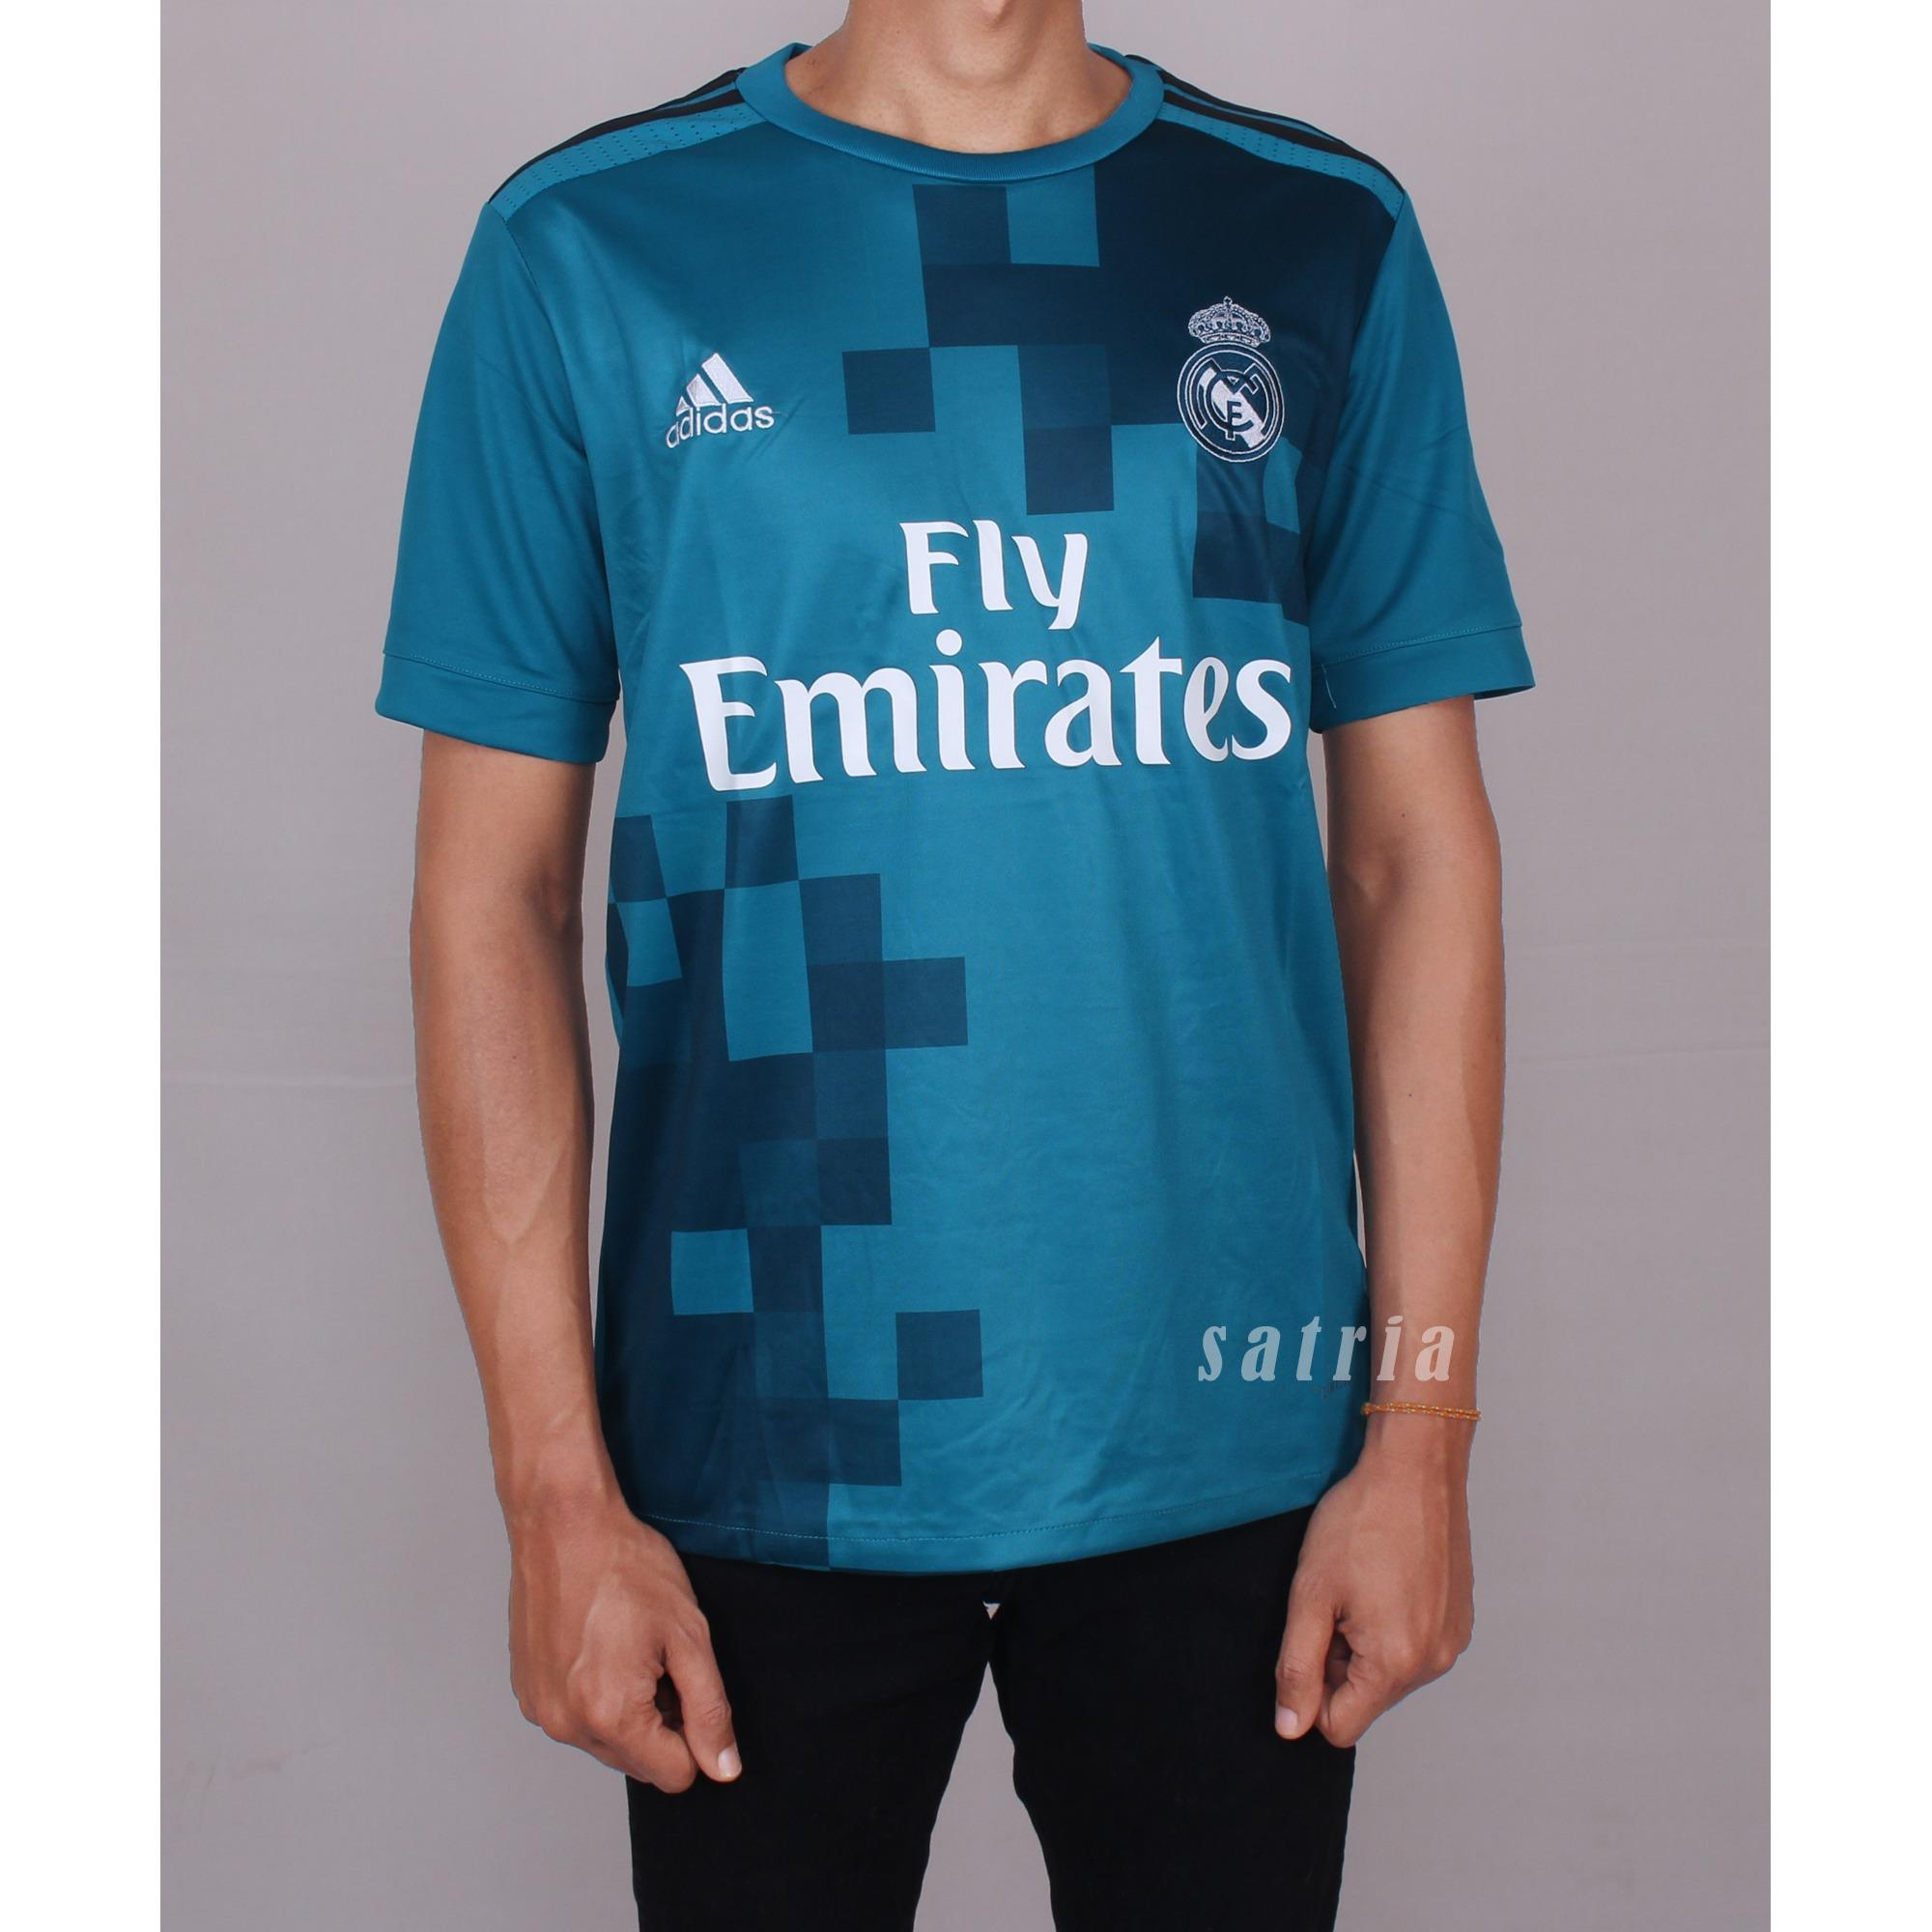 Kiara fashion - Jersey Bola Replica Shirt Jersey Home away third manch city MC Ukuran S M L. Source · Harga Penawaran Jersey Bola Real Madrid Third ...